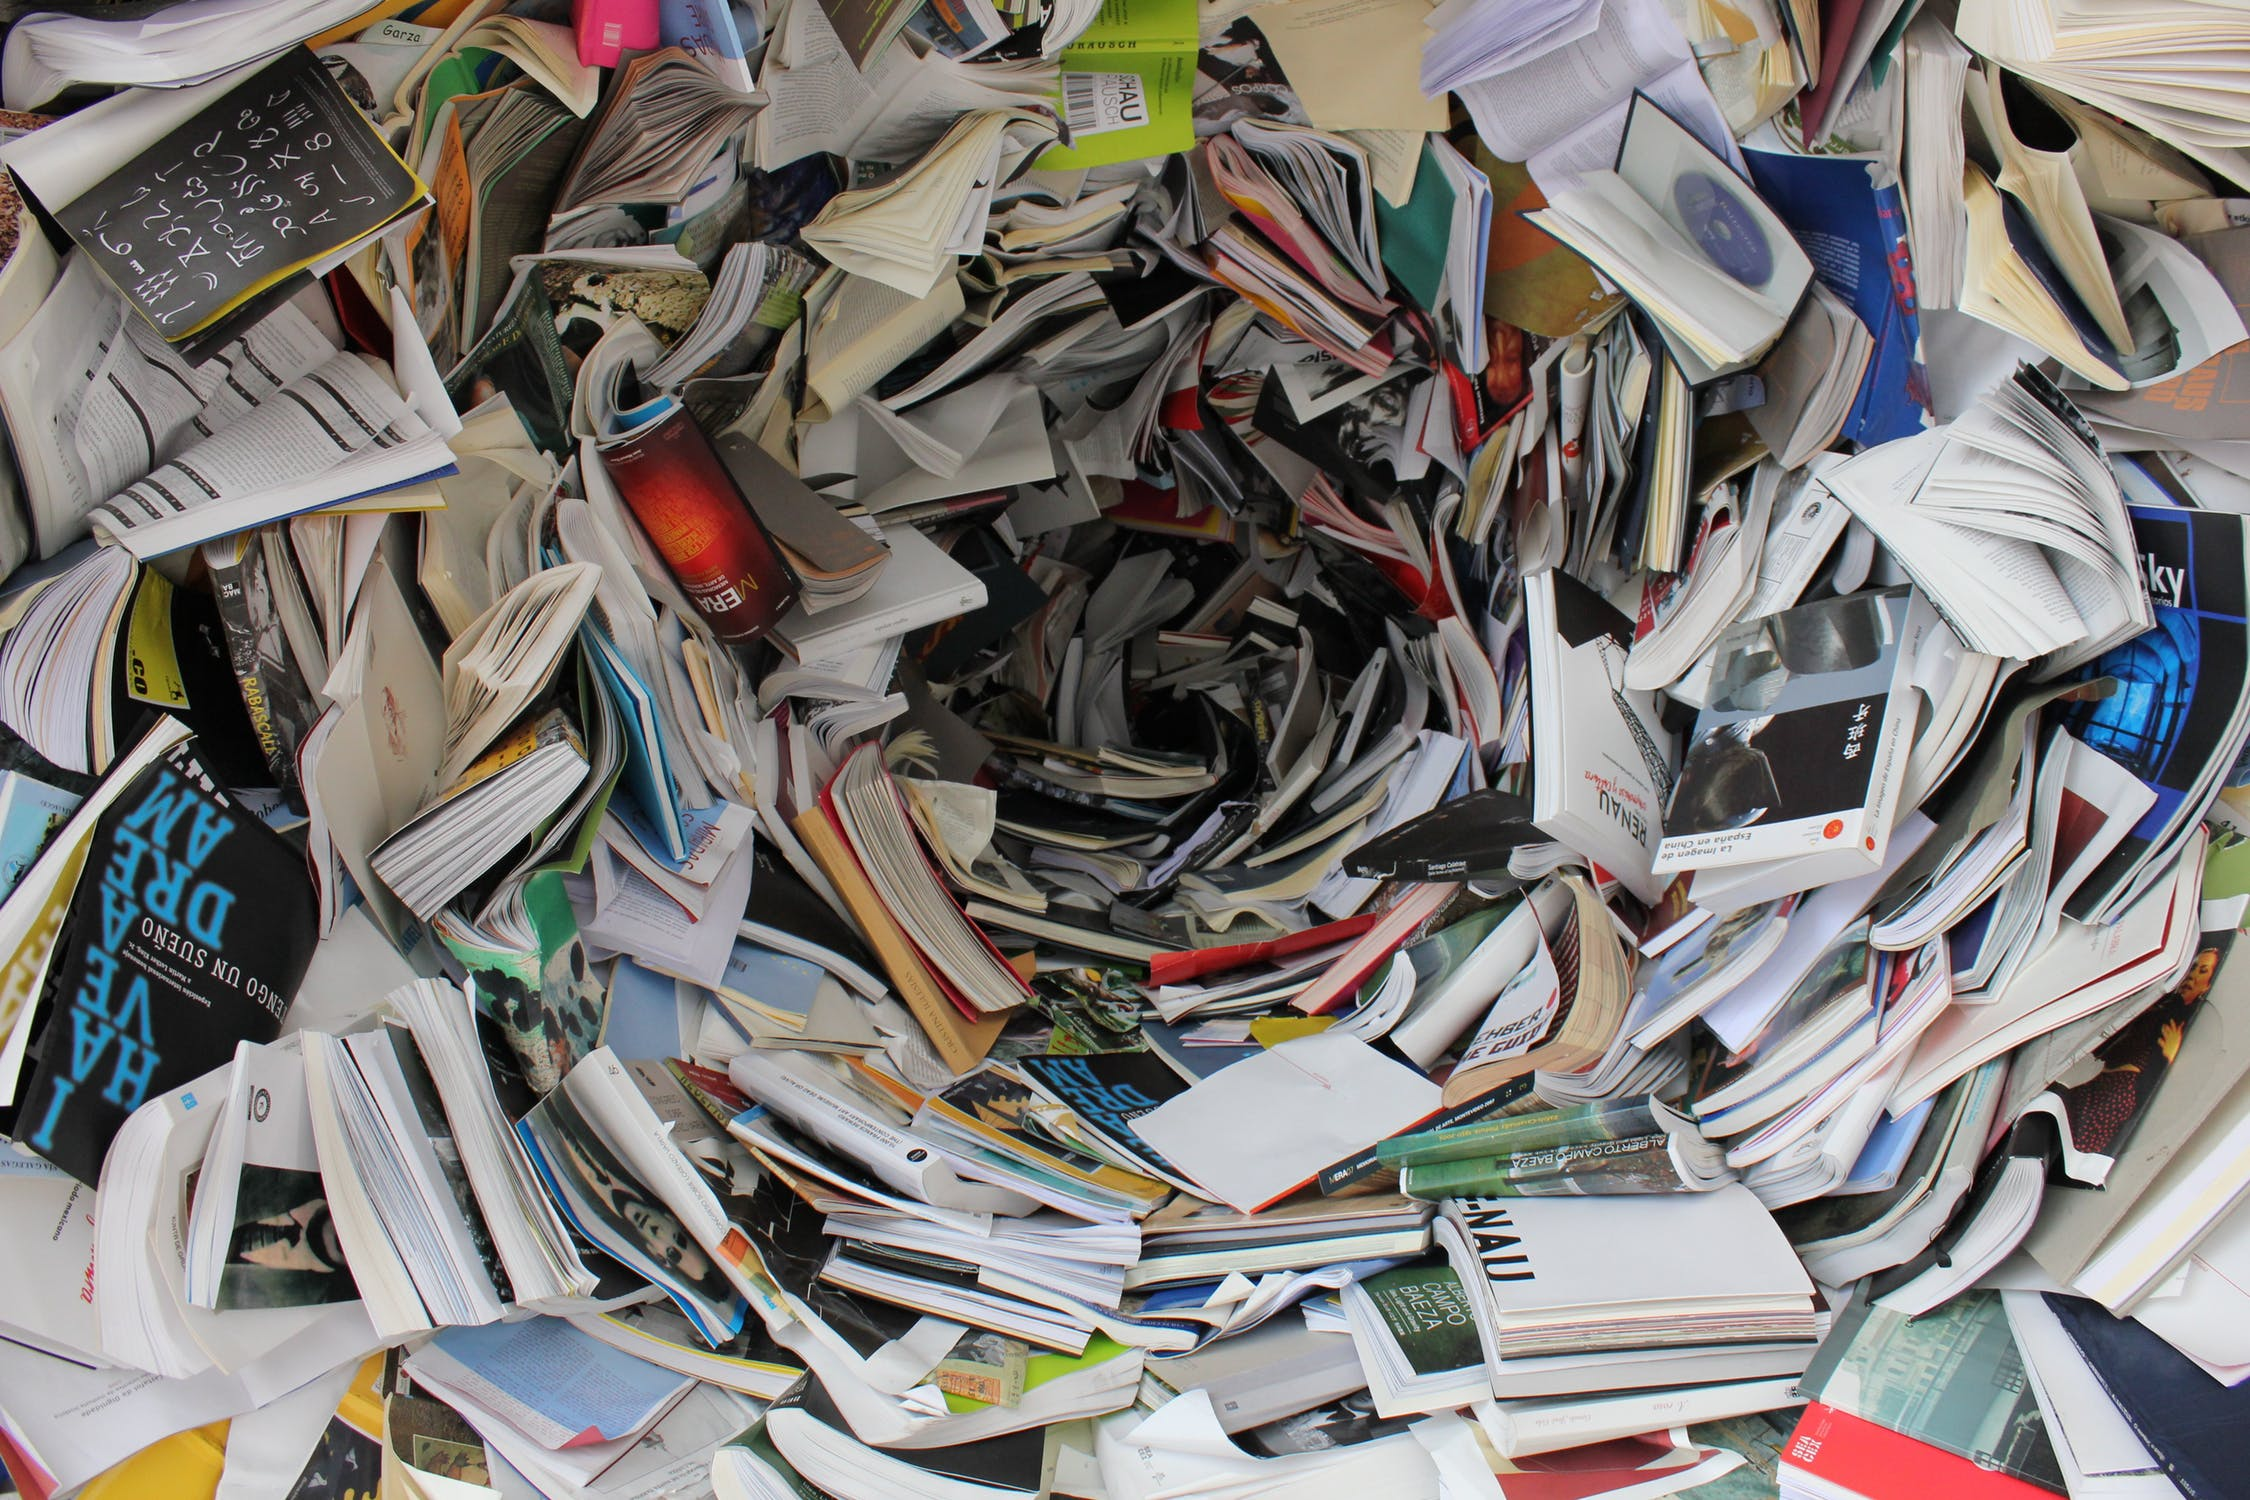 Books for shredding